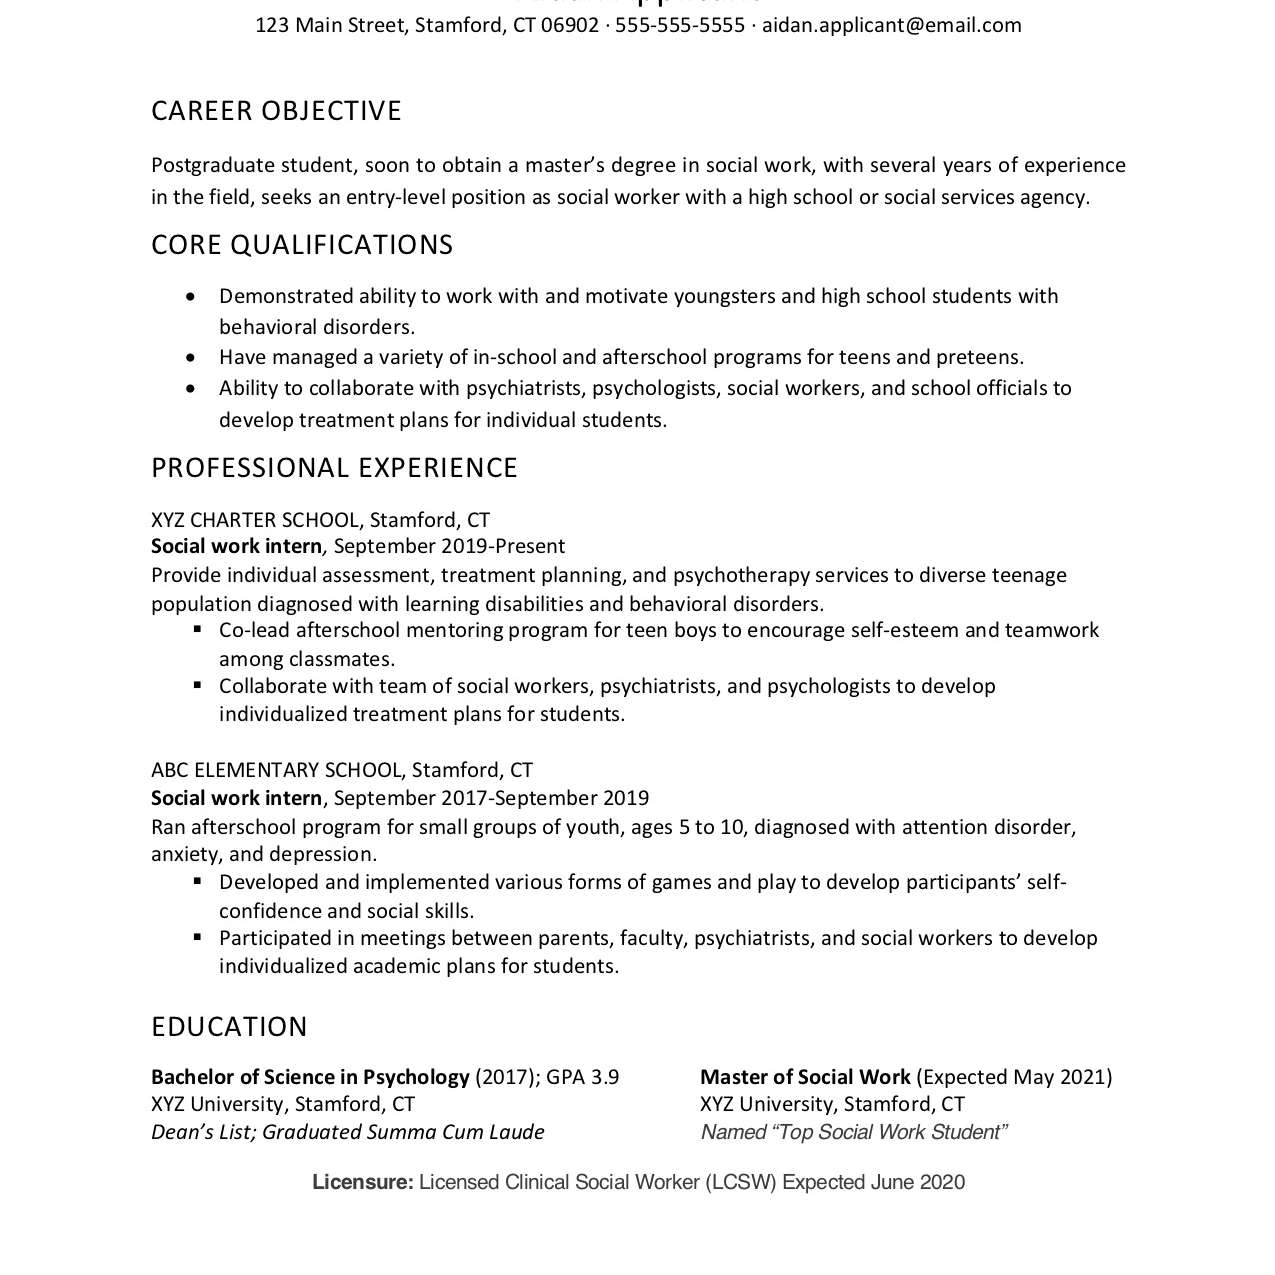 social worker cover letter and resume sample work examples maintenance technician summary Resume Social Work Resume Examples 2020